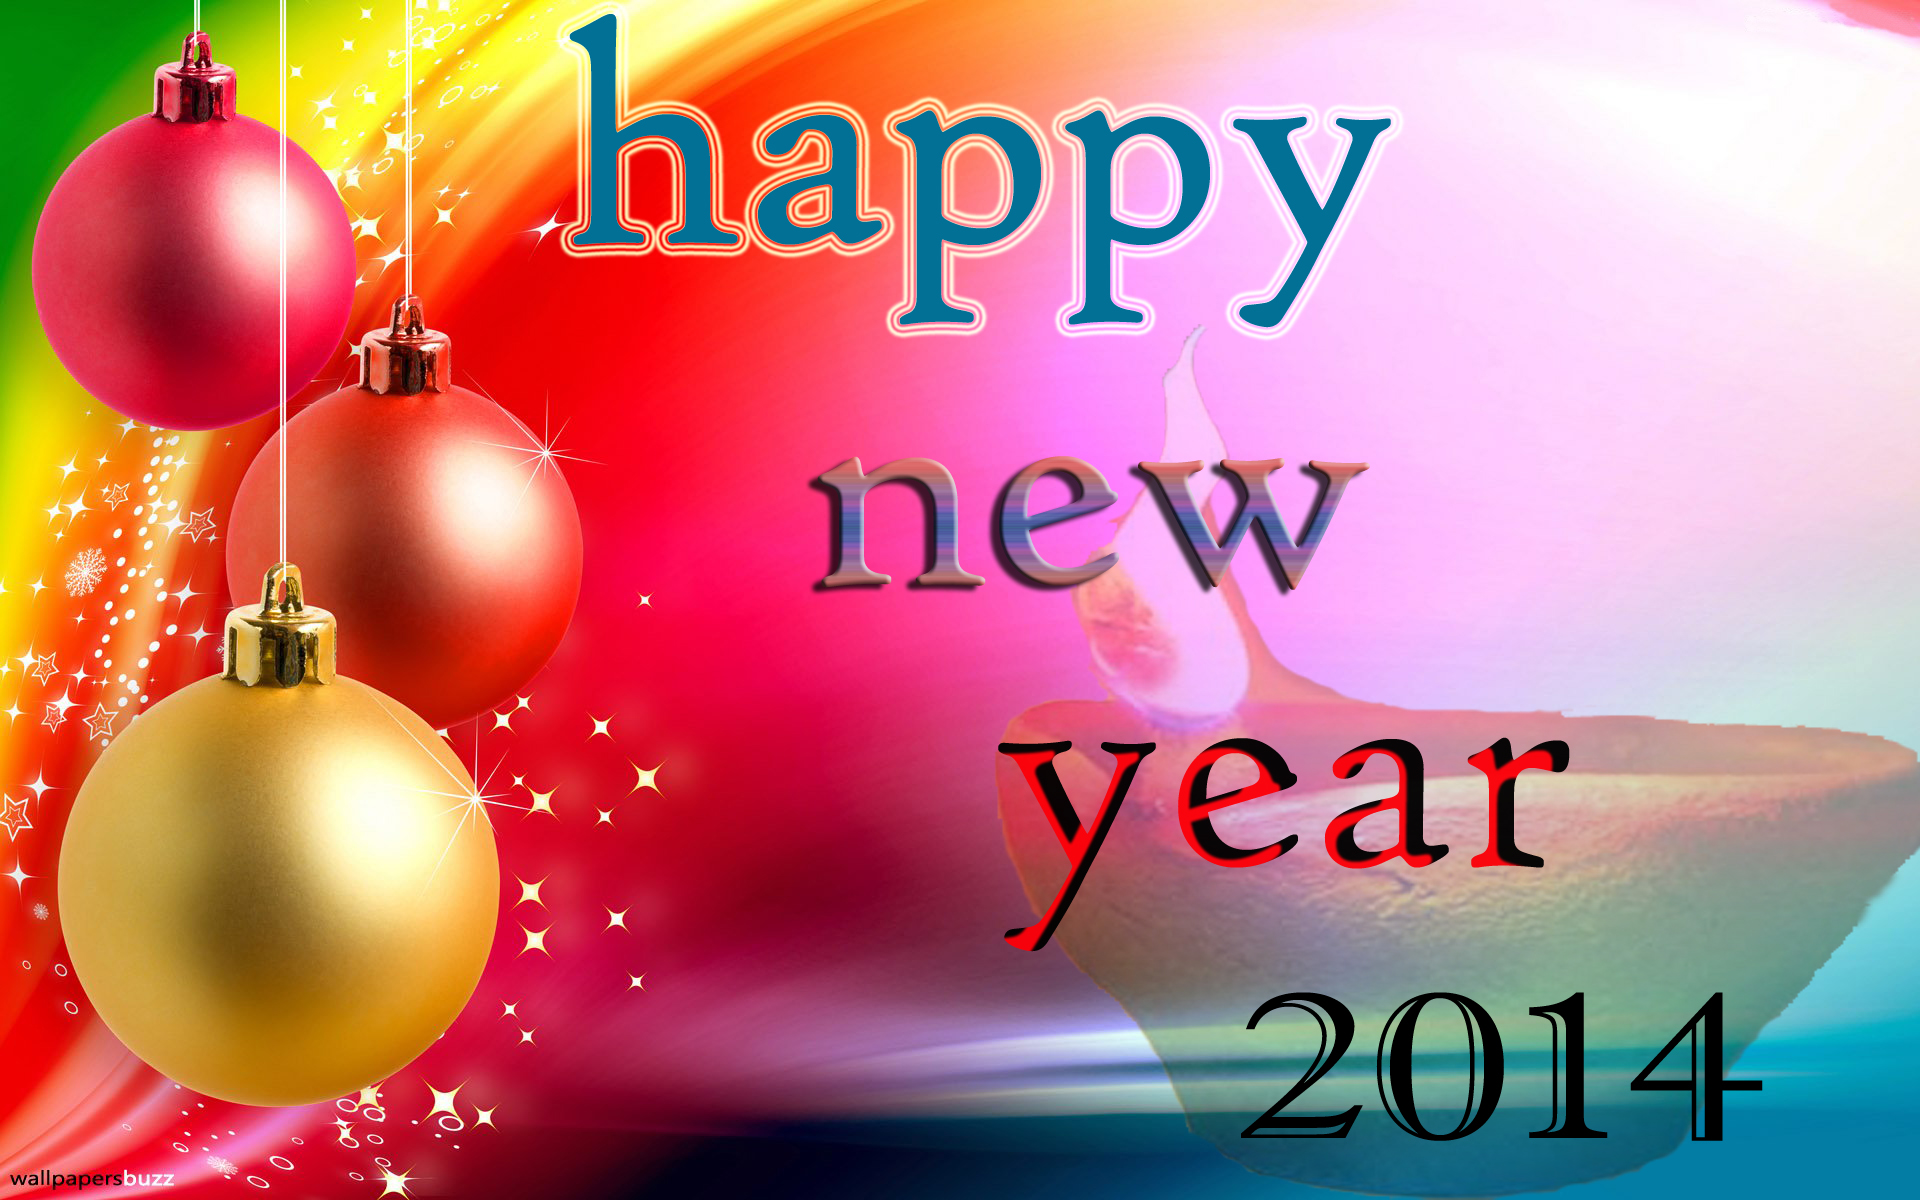 Happy new year for 2014 help change the world the future of the happy new year 2014 colorful background wallpaper voltagebd Image collections